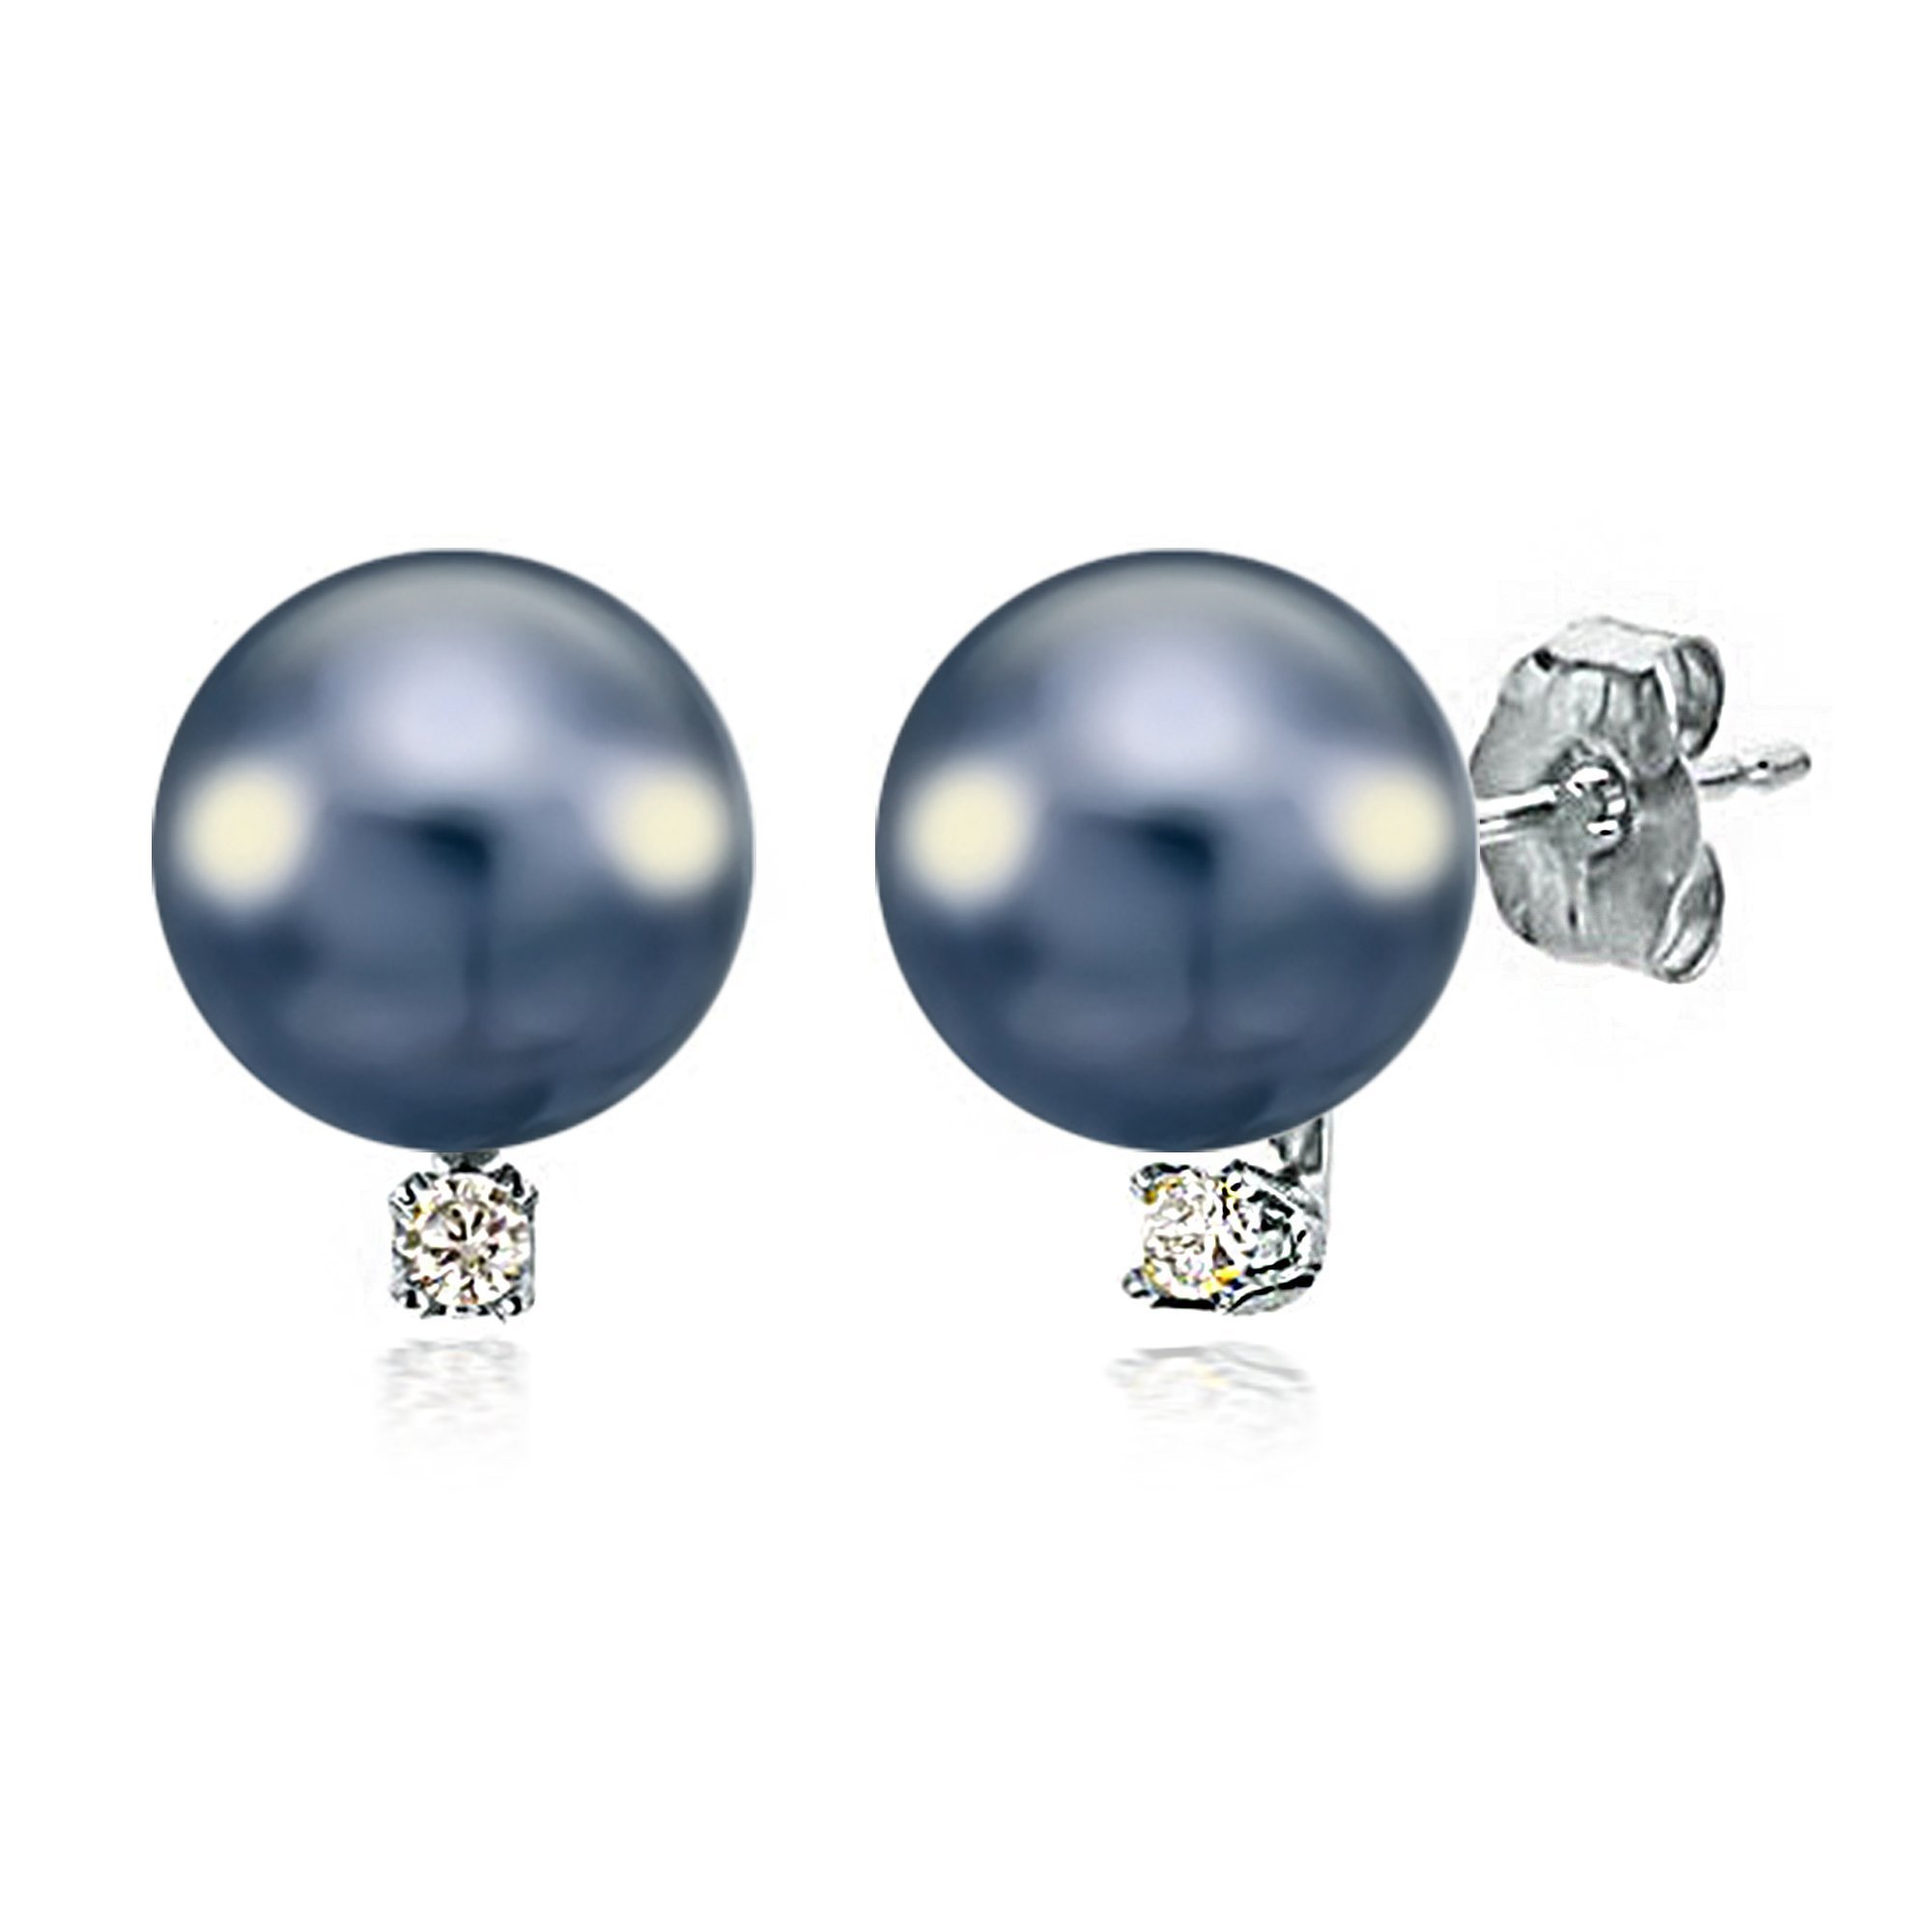 Diamond Studs Freshwater Cultured Black Pearl Earrings 14K White Gold Jewelry for Women 1/50 CTTW (G-H, SI1-SI2) - Choice of Pearl Sizes